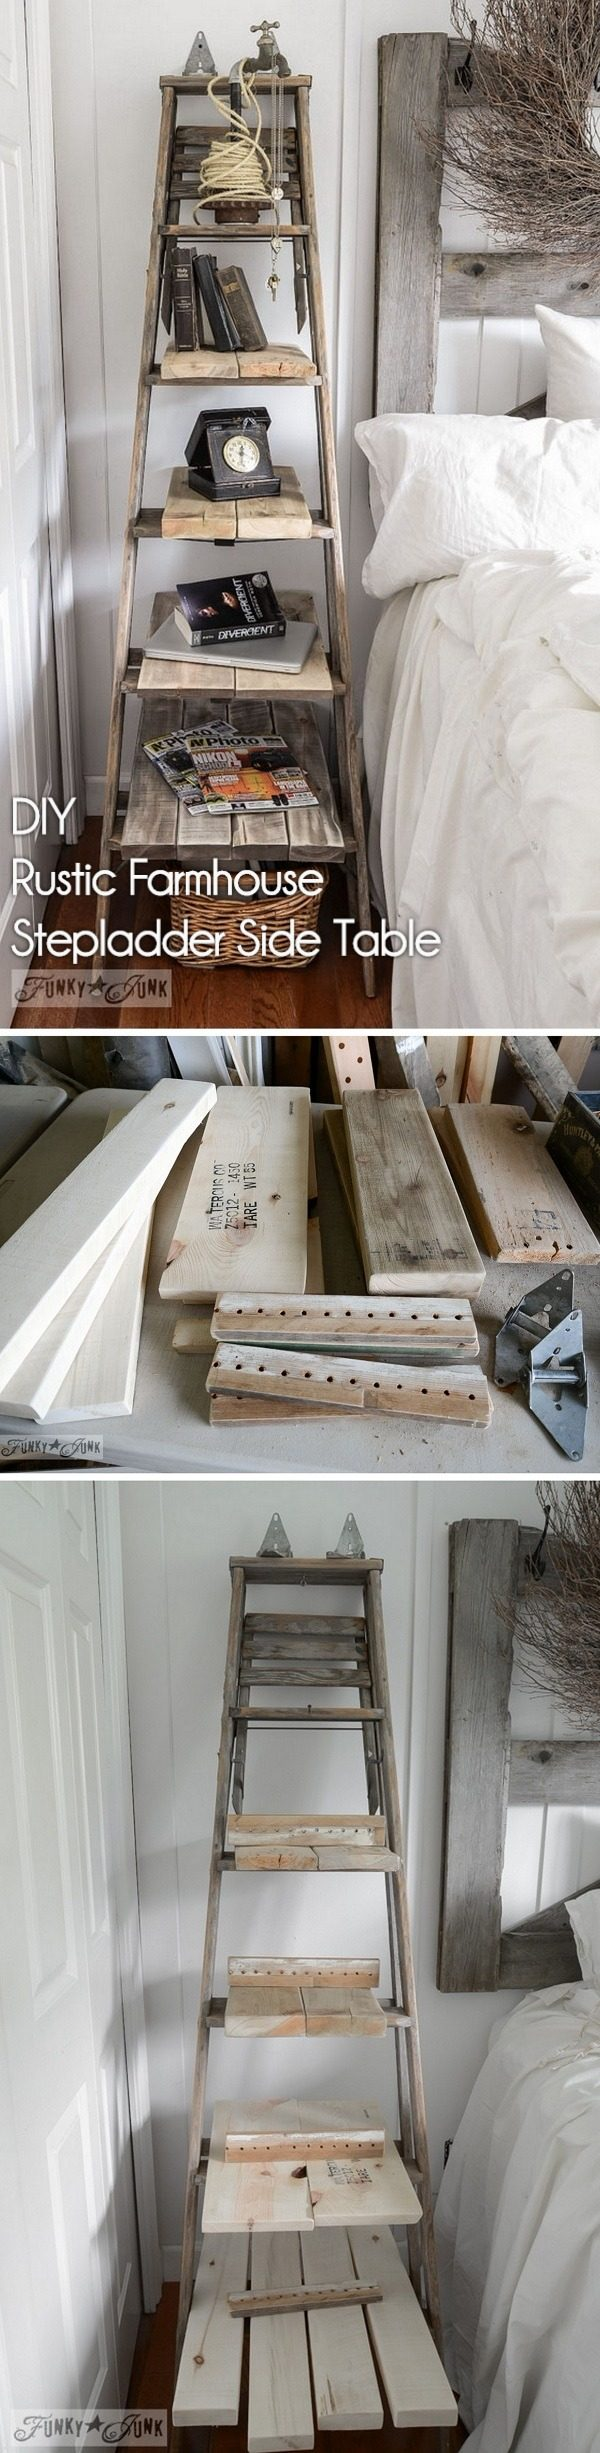 How to make a #DIY rustic stepladder for #farmhouse style home decor #HomeDecorIdeas #RusticDecor #BedroomIdeas